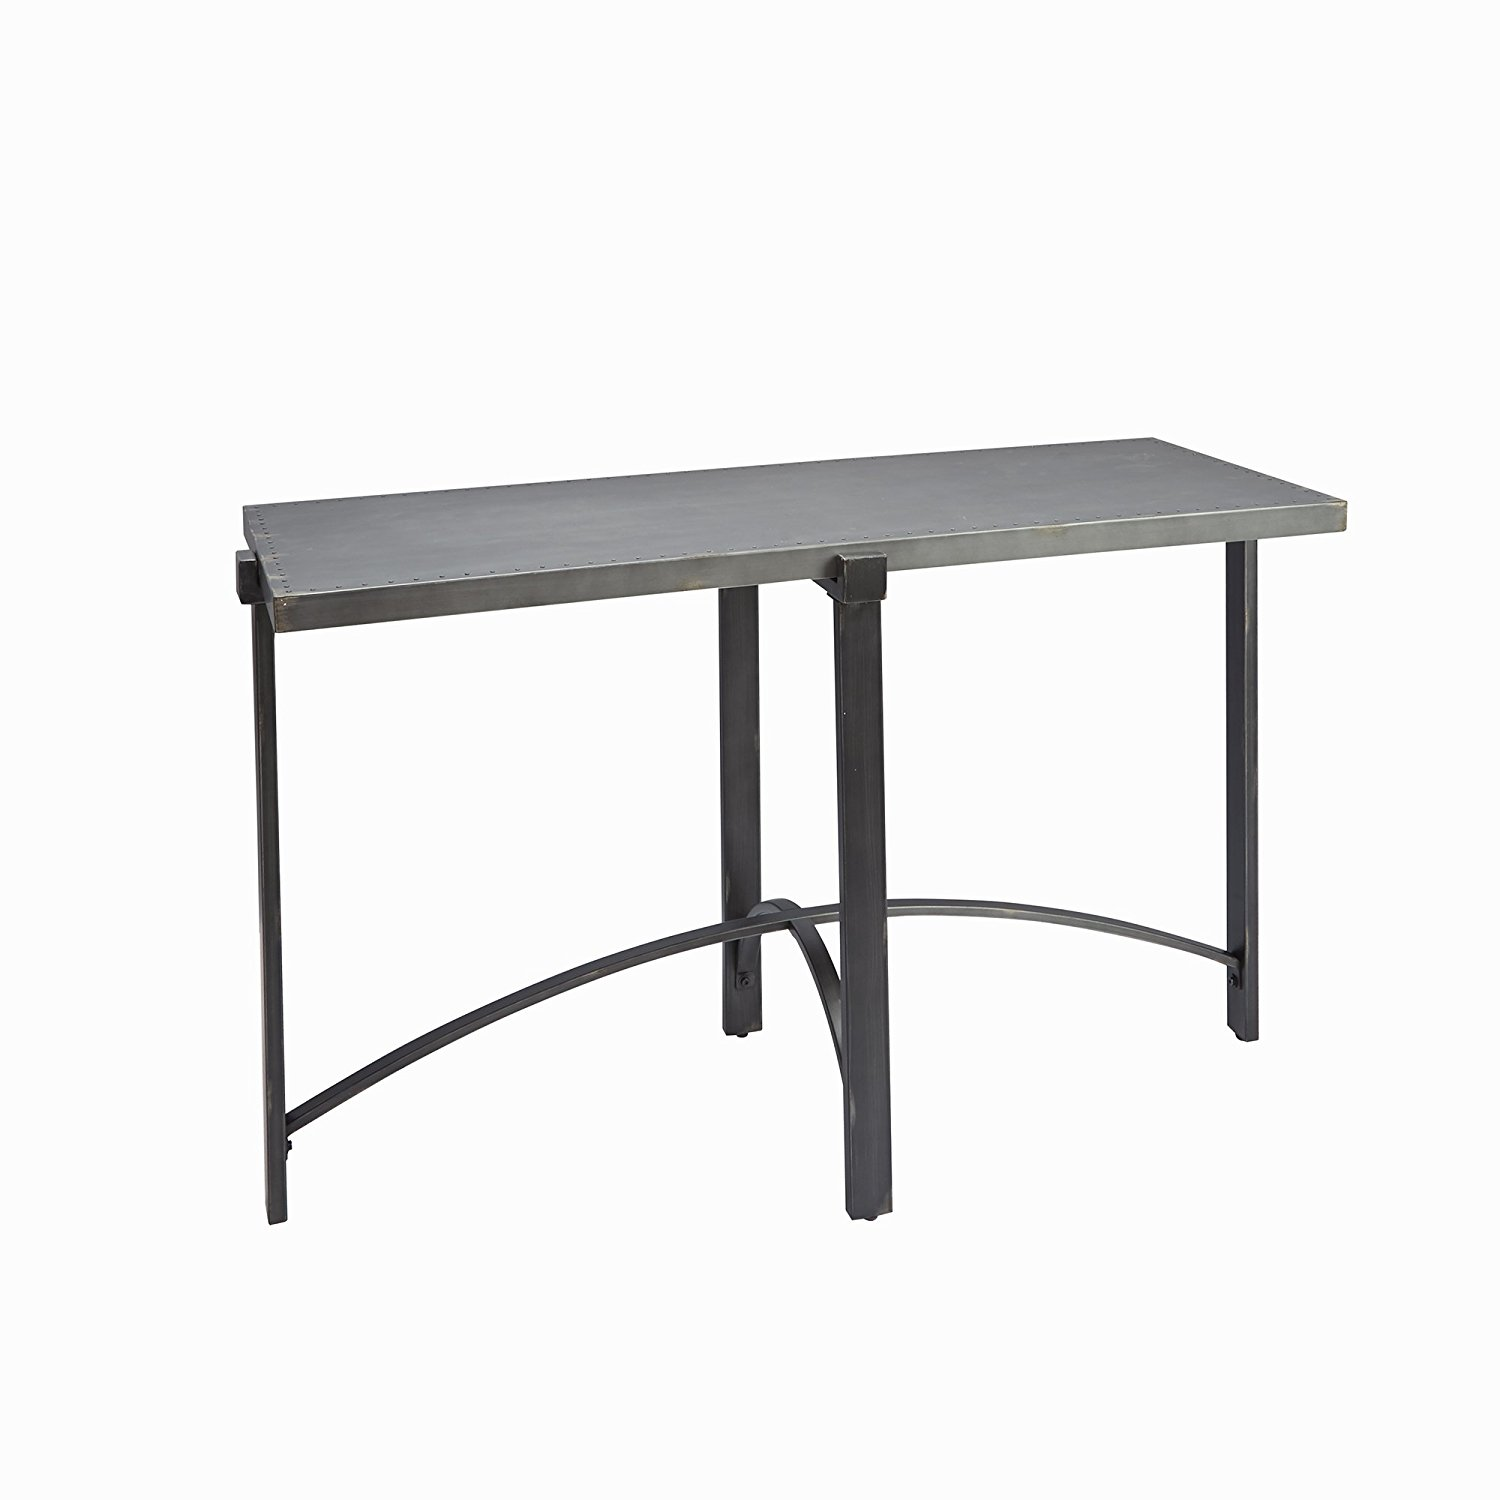 """Silverwood FT1276-CNS-SME Lewis Console Table with Metal Top, 19.5"""" L x 49.5"""" W x 29"""" H, Bronze Metal"""